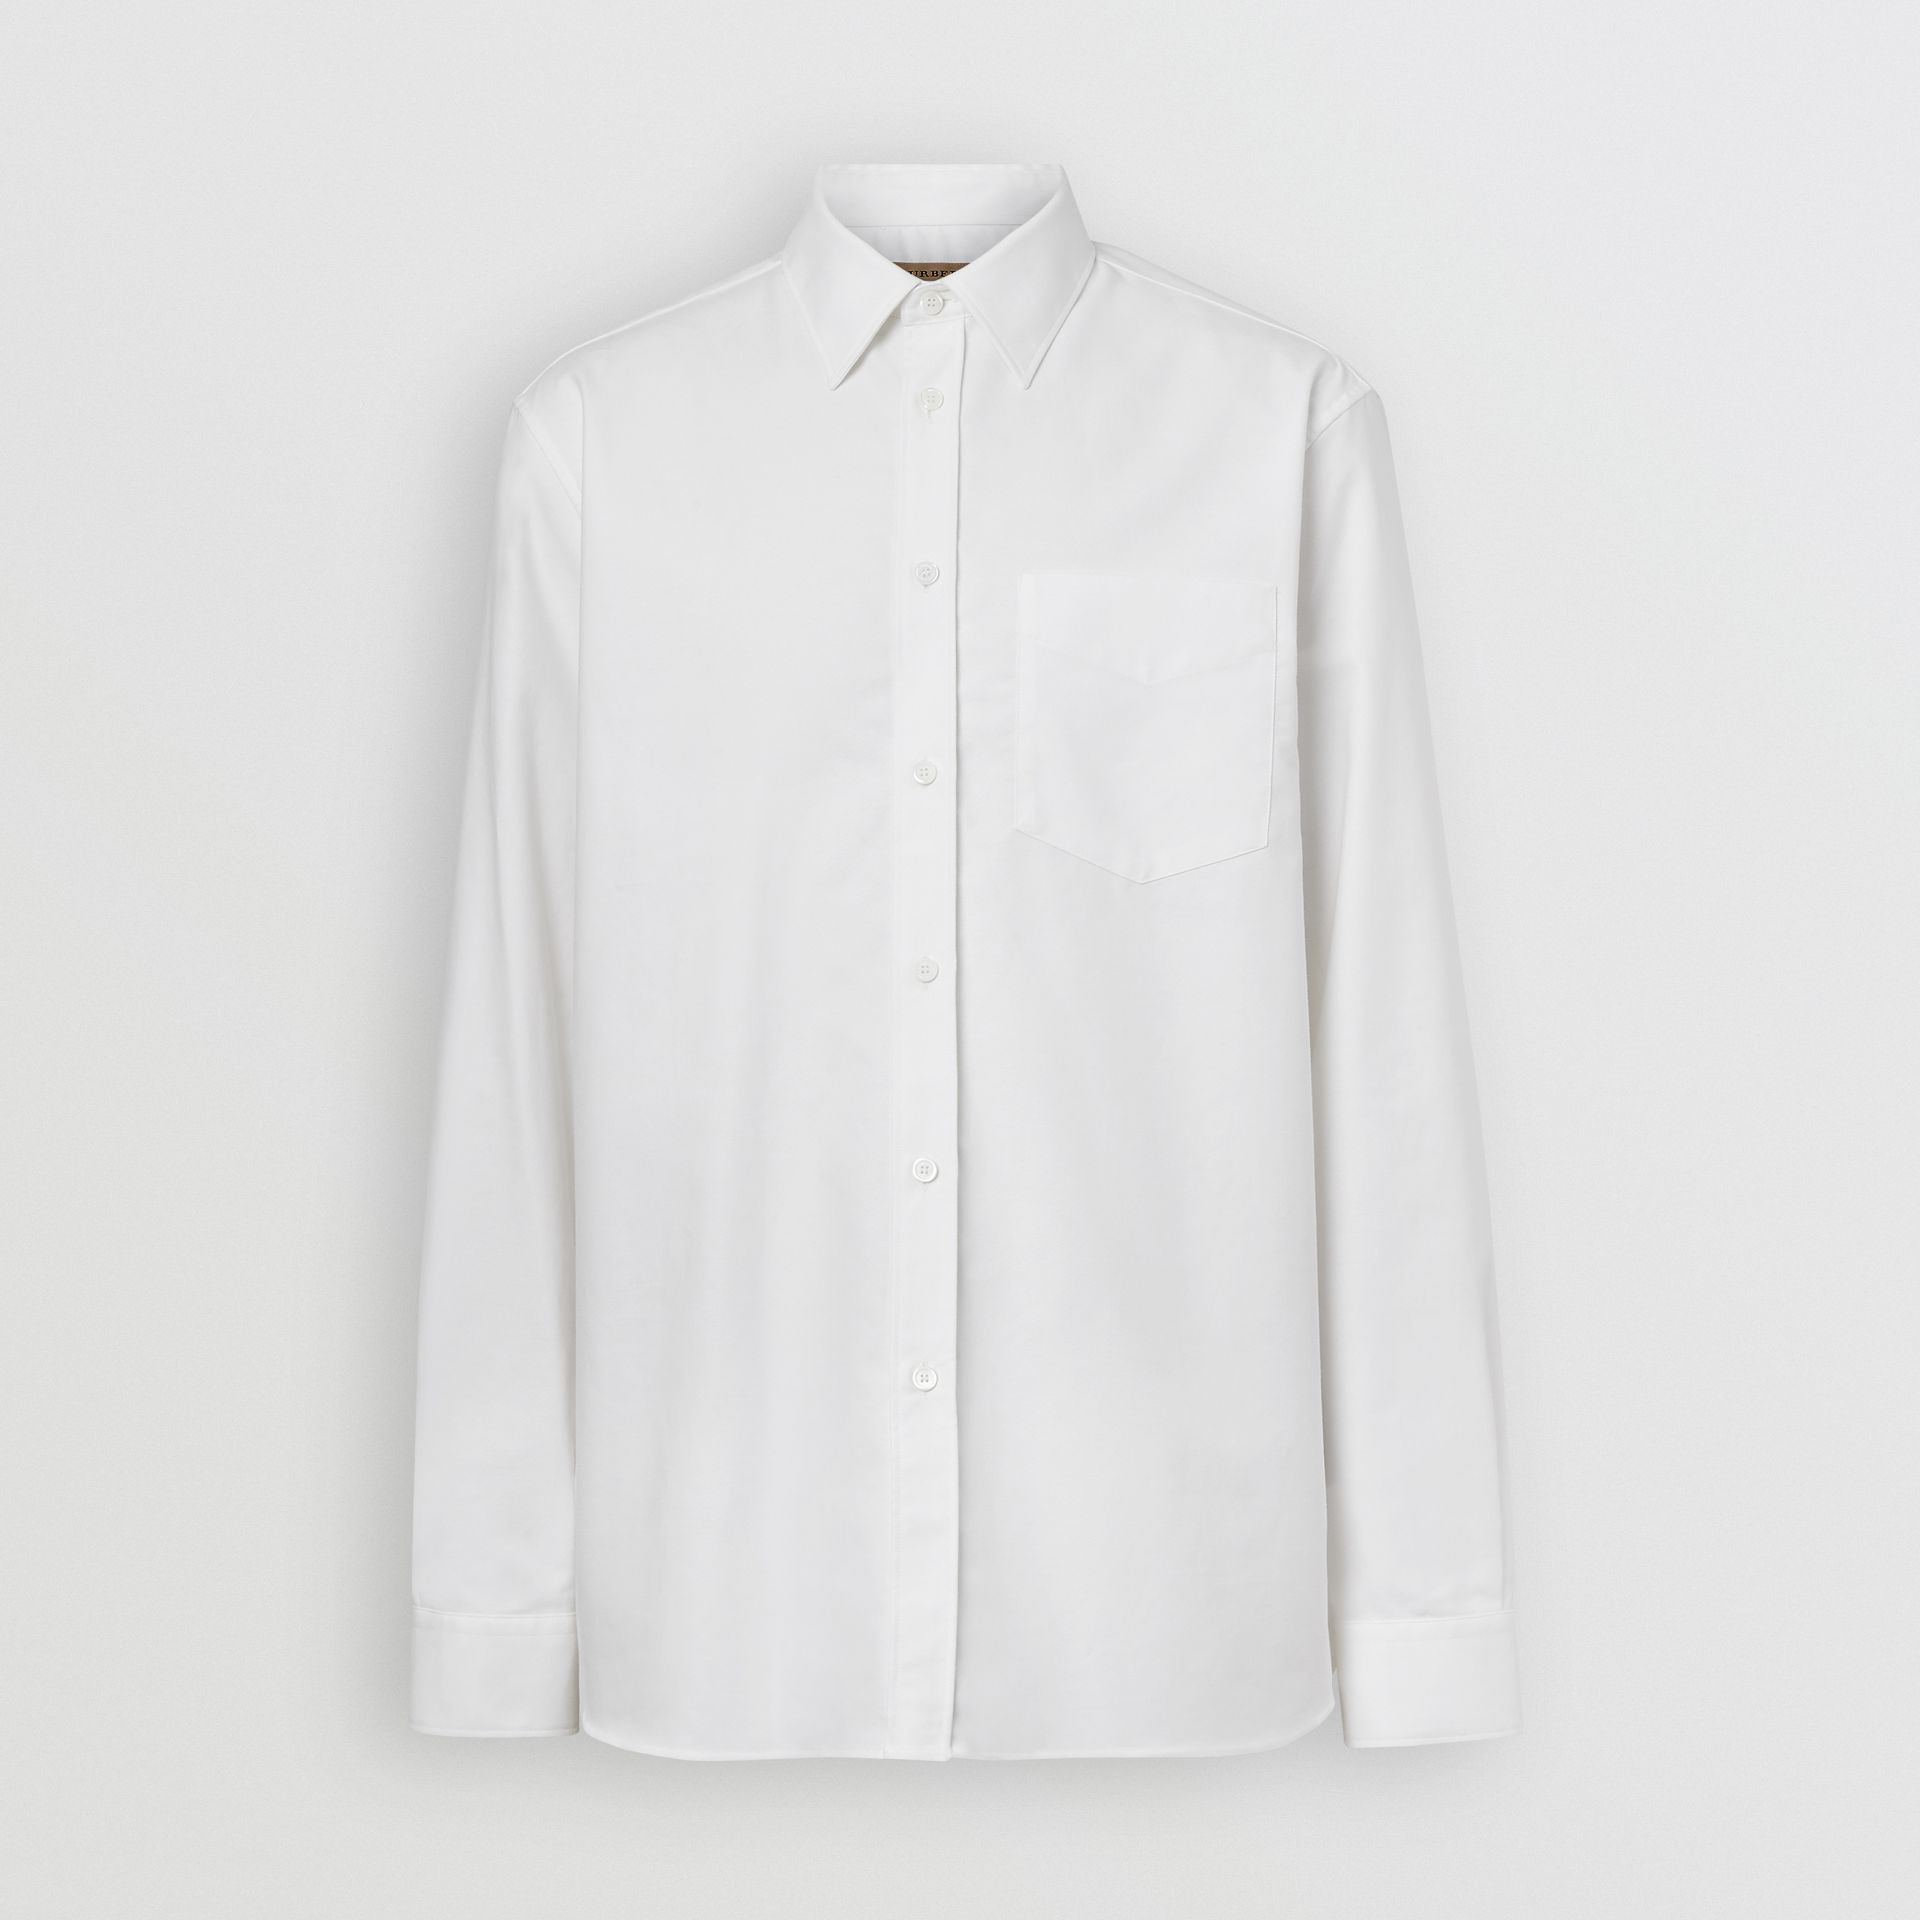 EKD Appliqué Cotton Oxford Shirt in White - Men | Burberry United Kingdom - gallery image 3